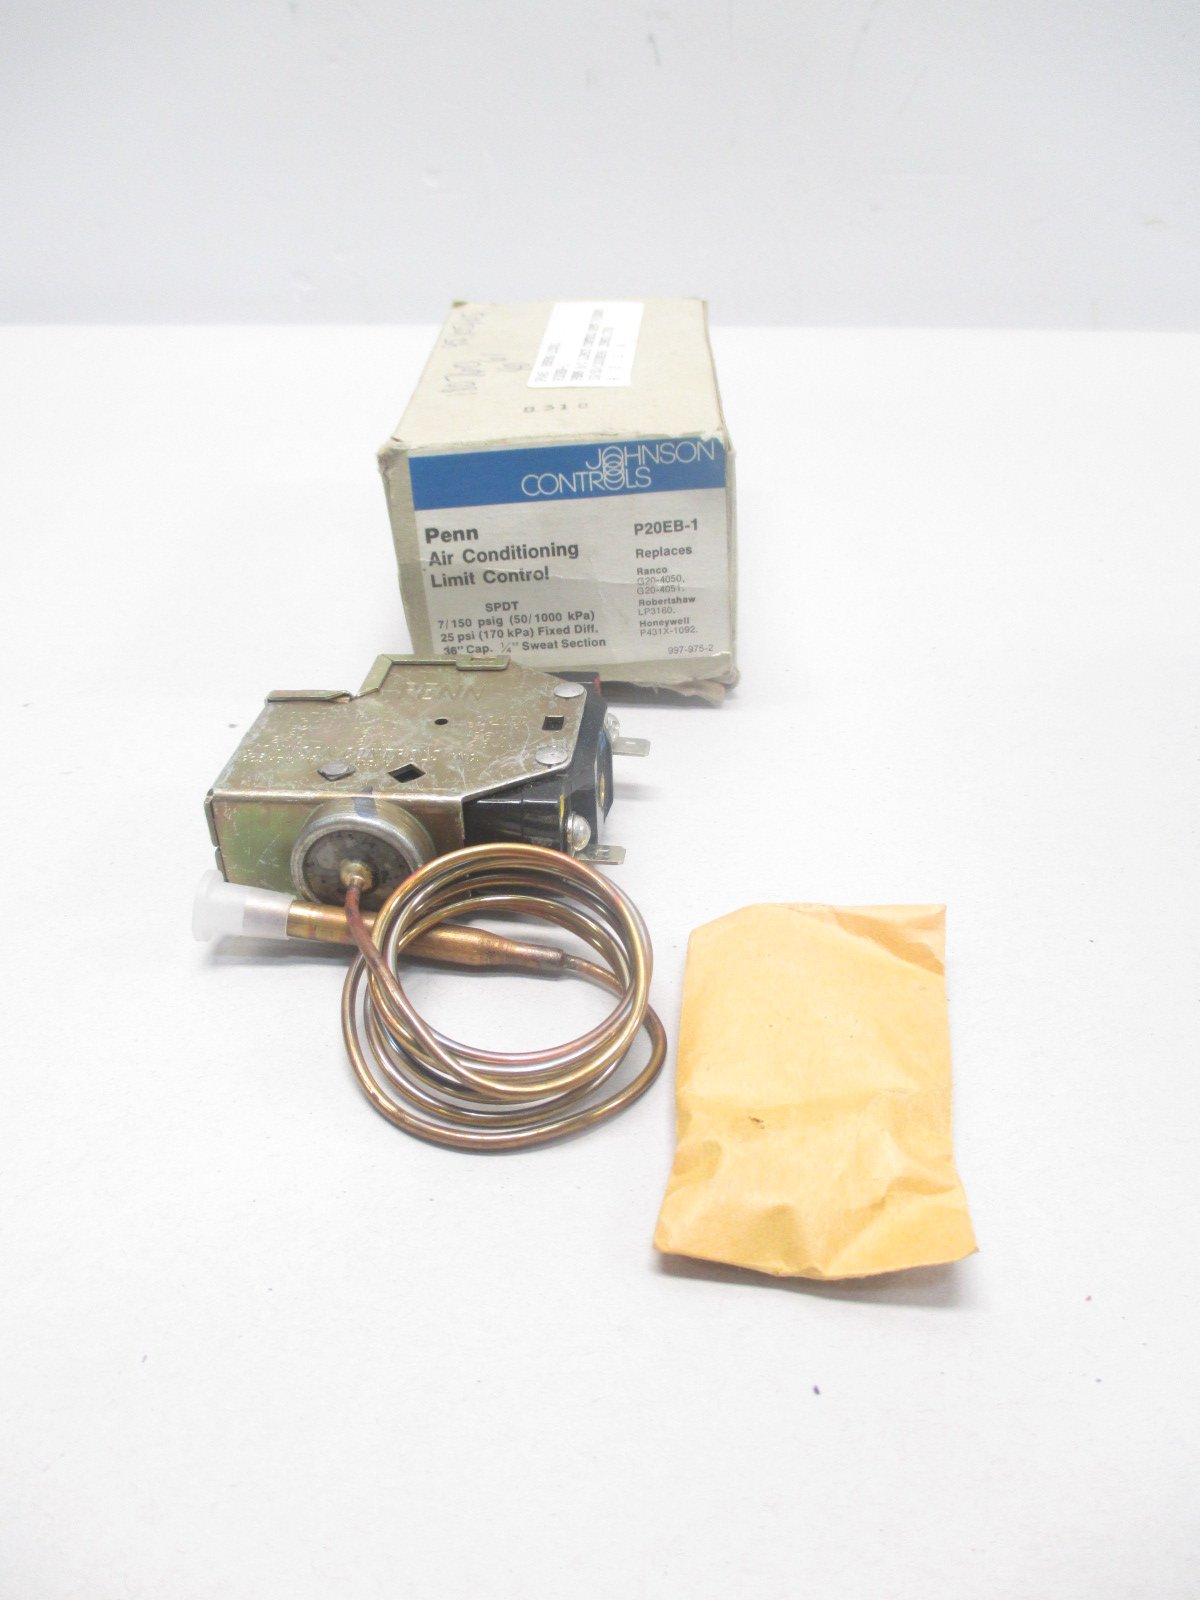 NEW JOHNSON CONTROLS P20EB-1 AIR CONDITIONING LIMIT CONTROL D469358